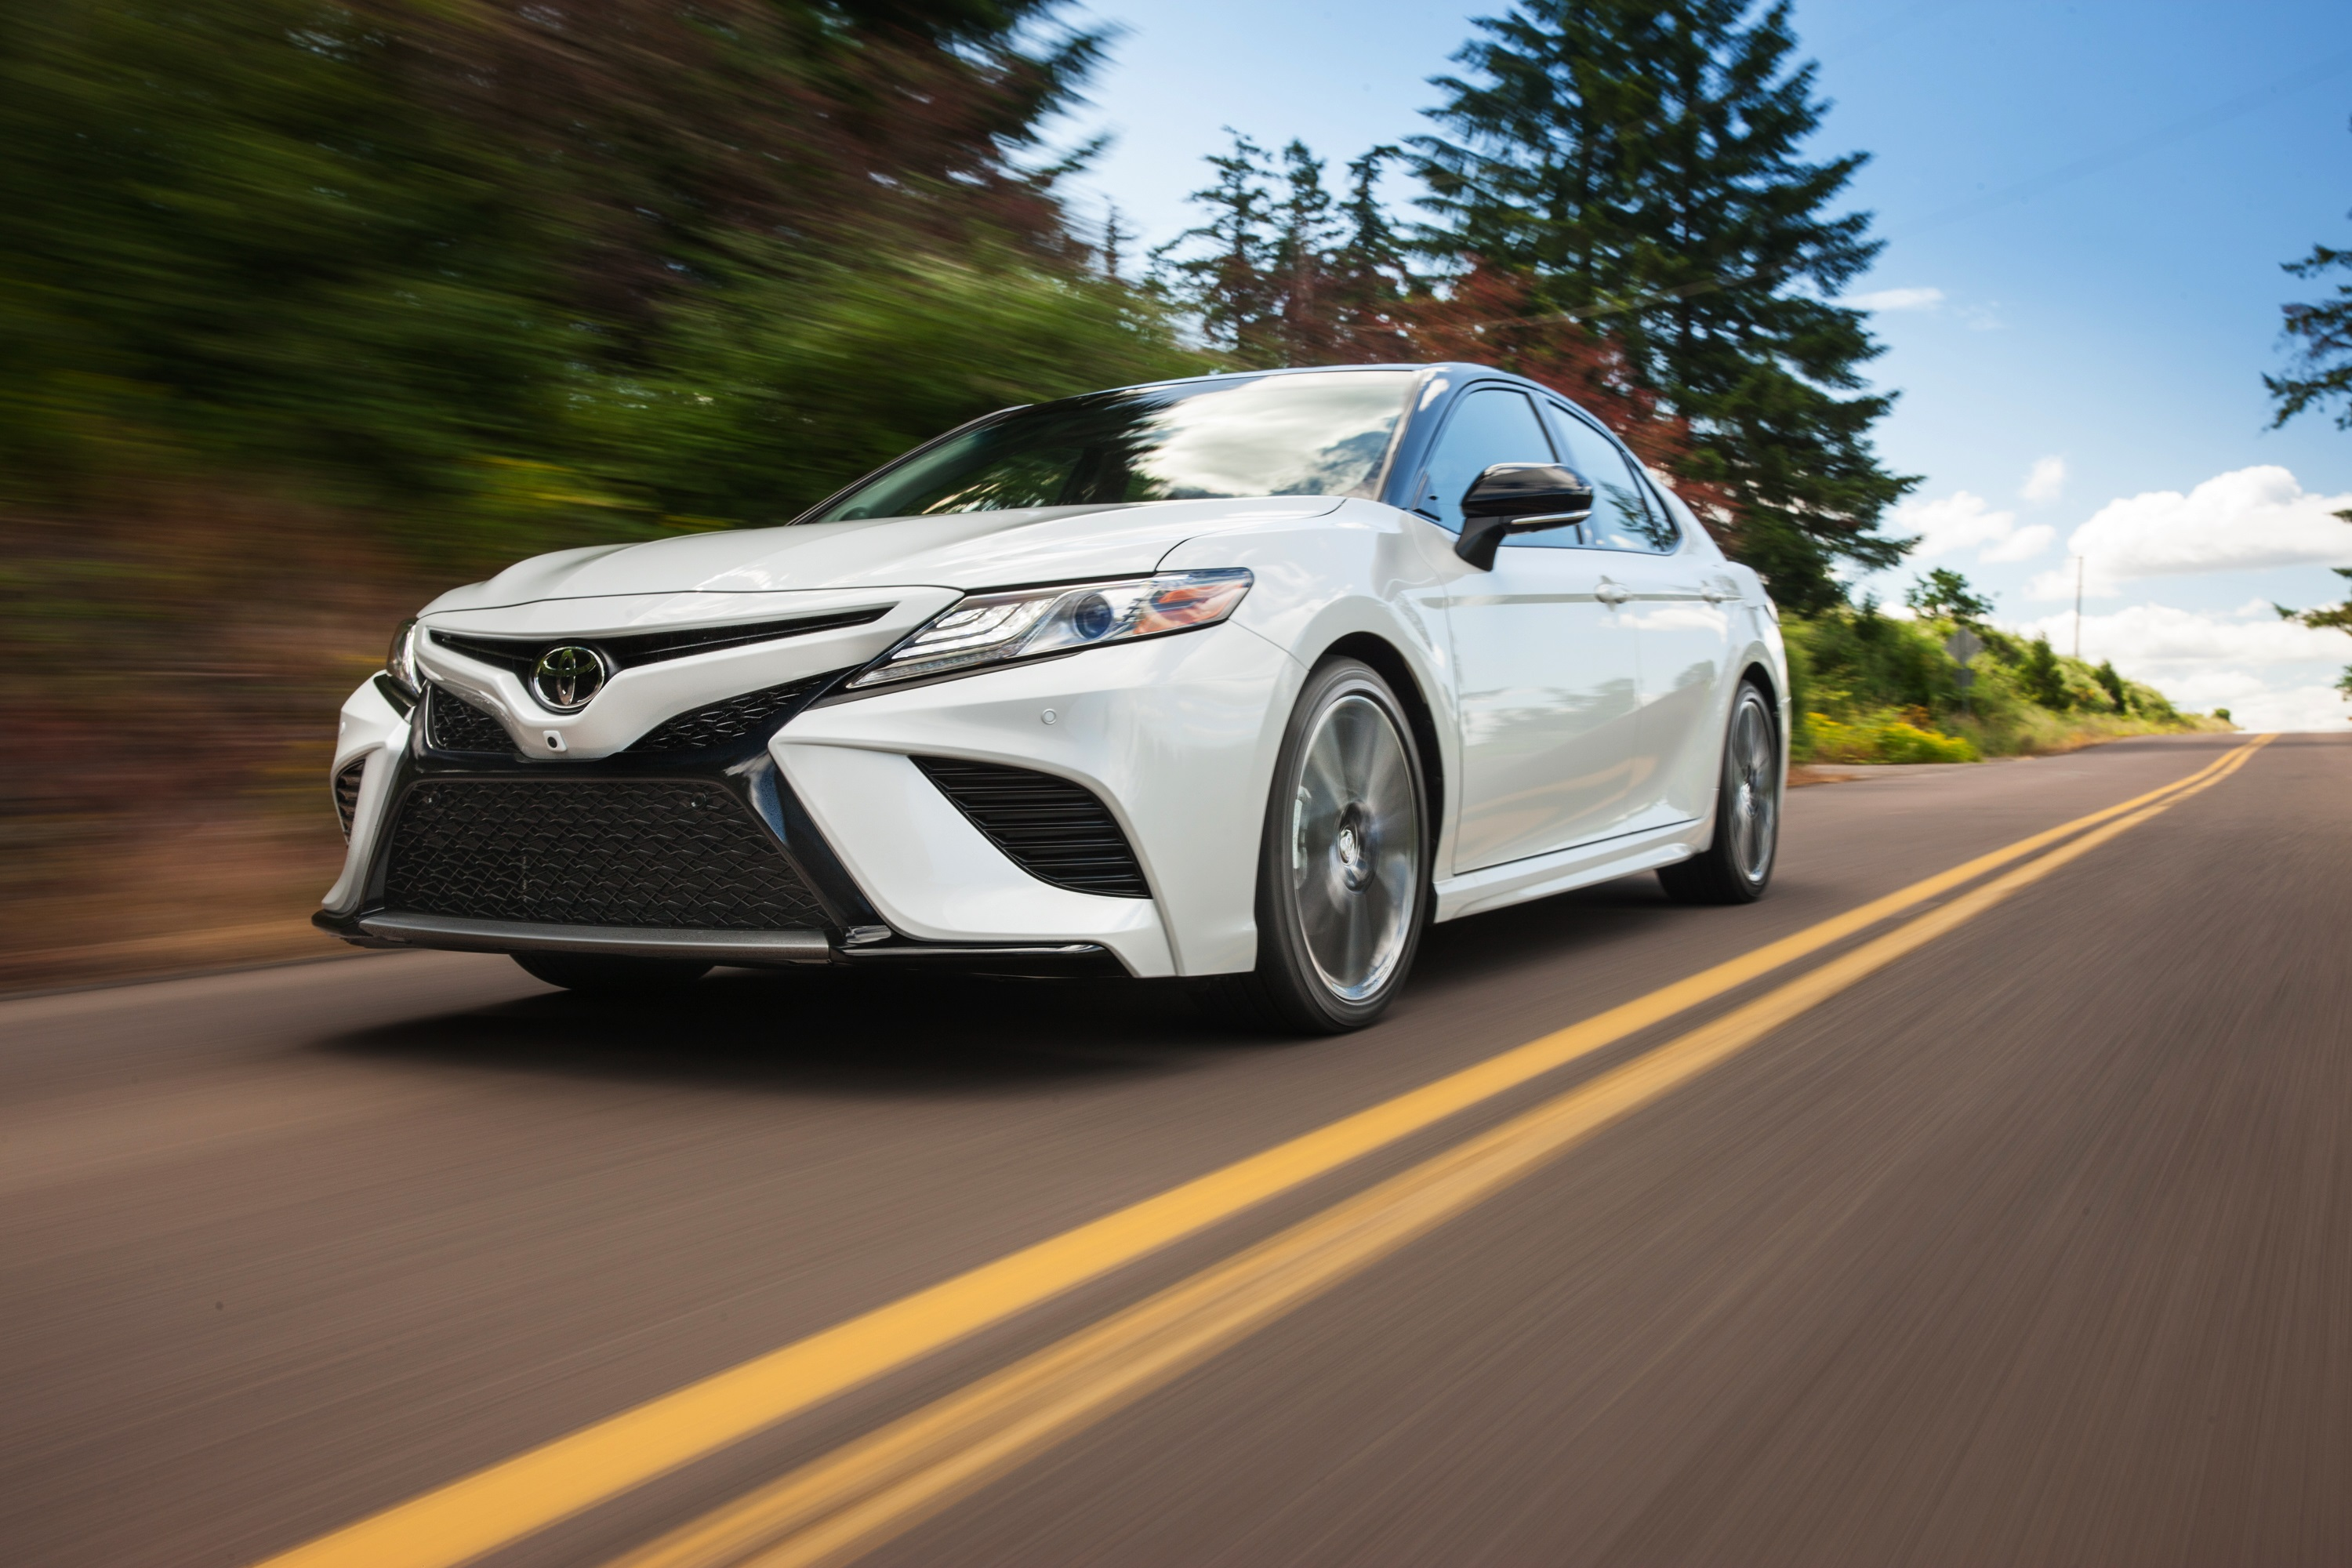 Manufacturer photo: The Toyota Camry is a proven, dependable and safe car with exciting and emotional character, thanks to its much newfound performance and style